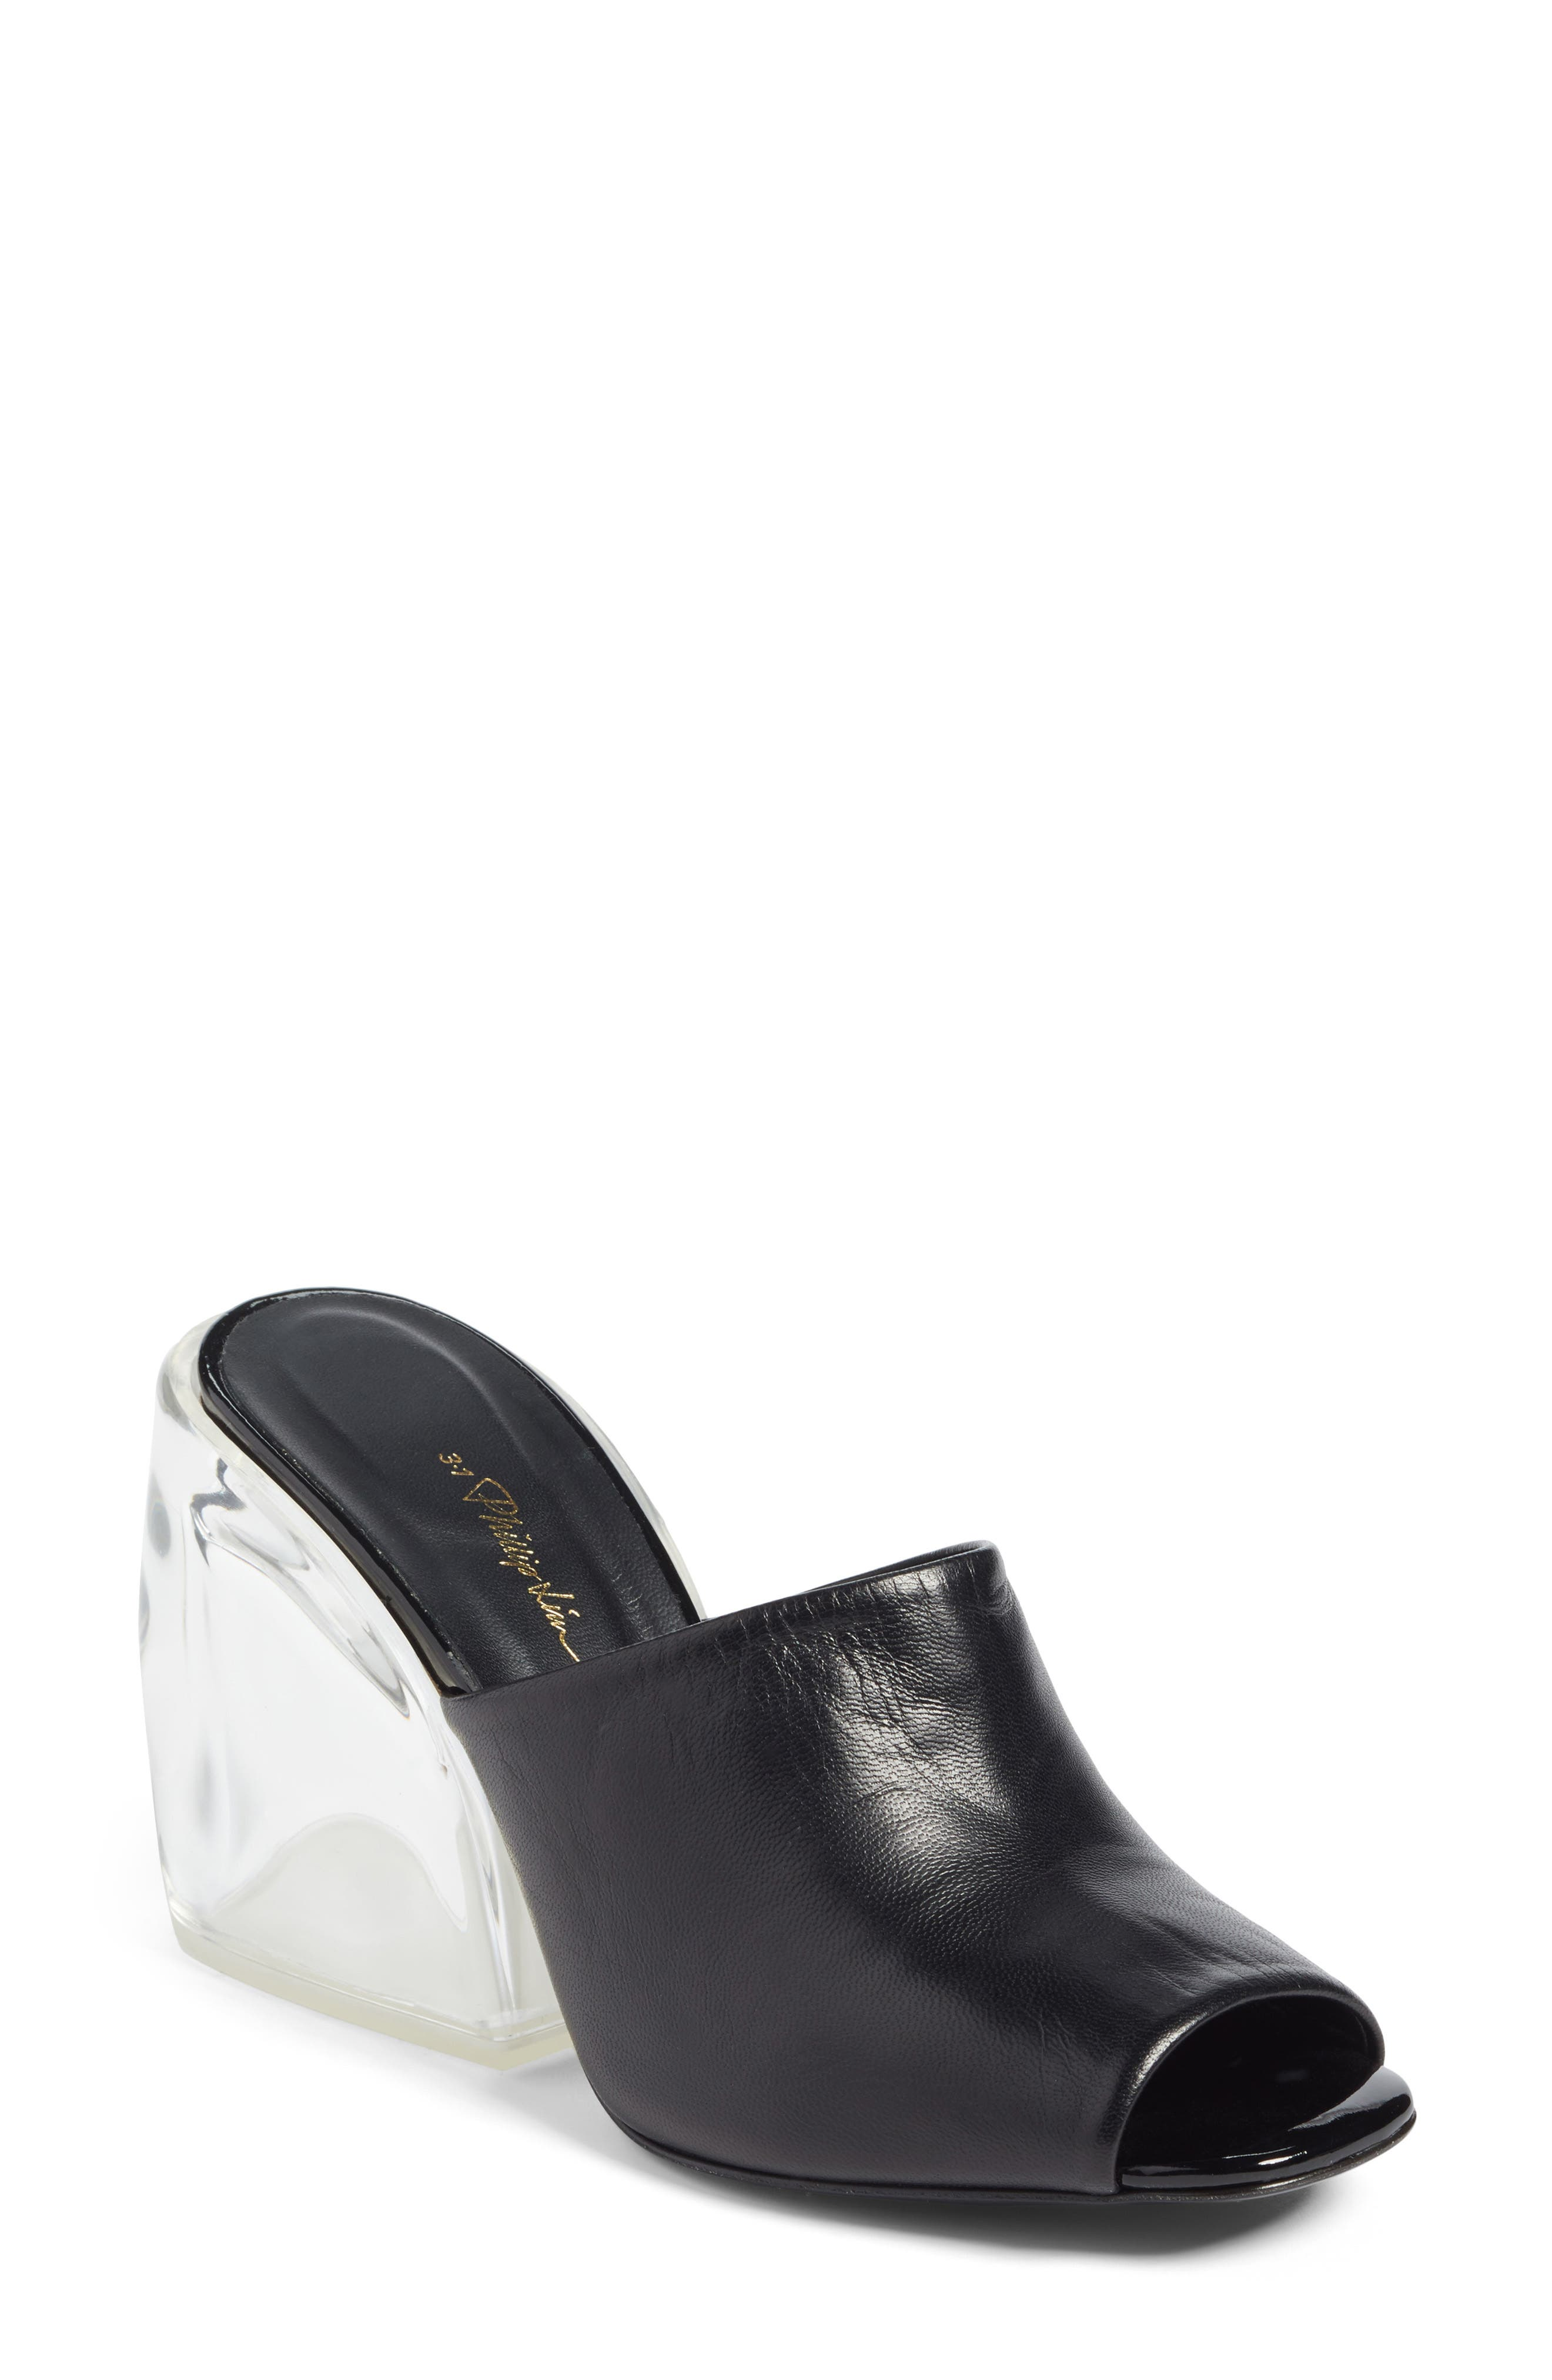 Transparent Wedge Slide Sandal,                         Main,                         color, BLACK